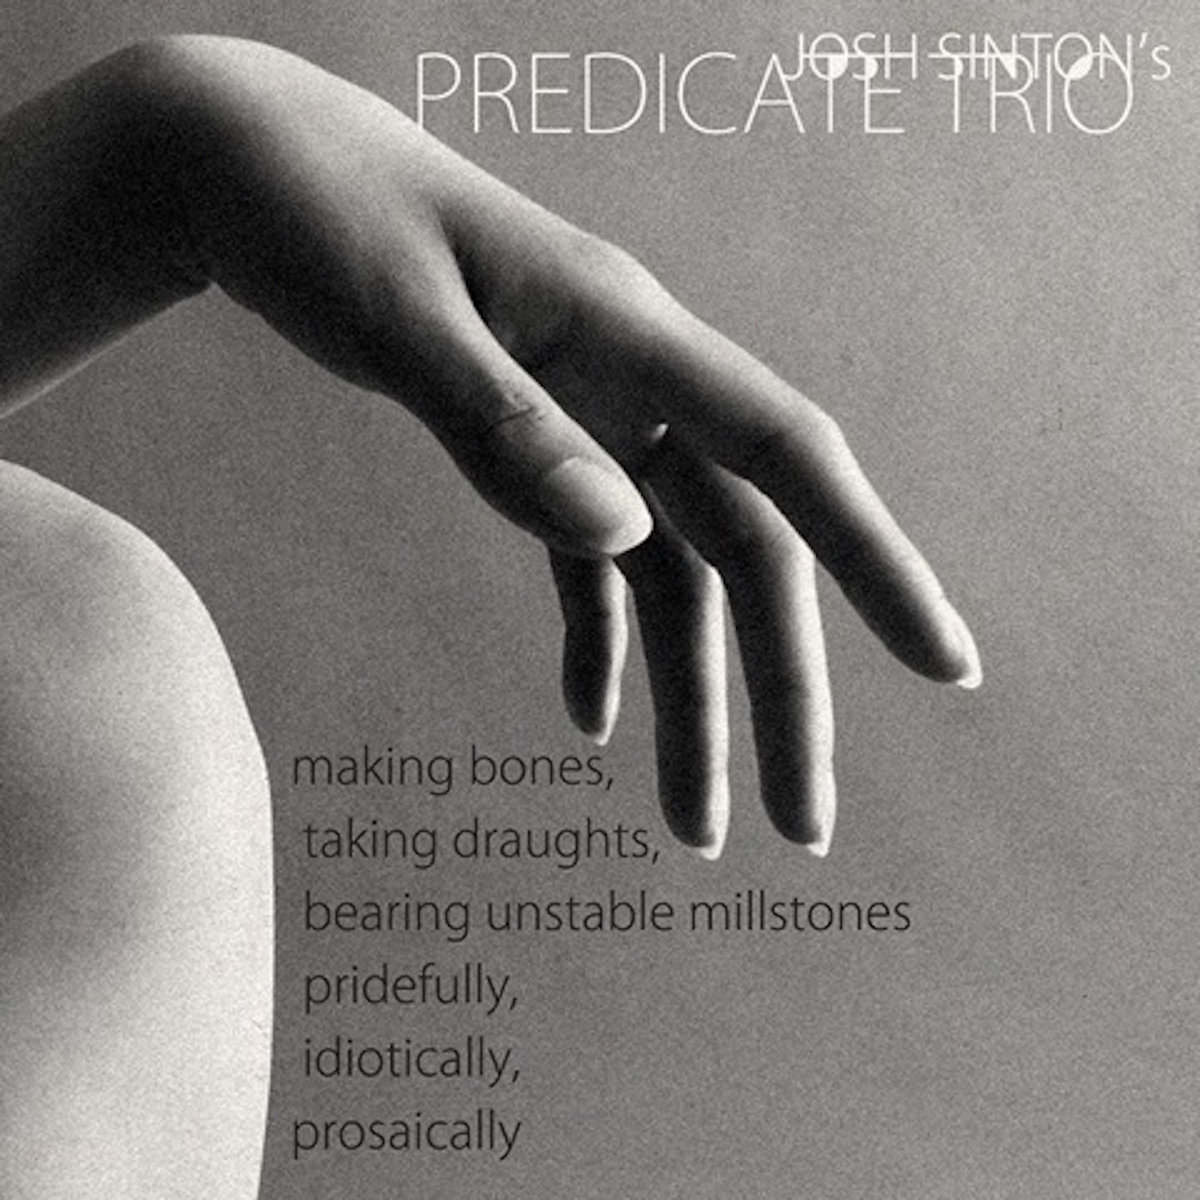 making bones by Josh Sinton's Predicate Trio